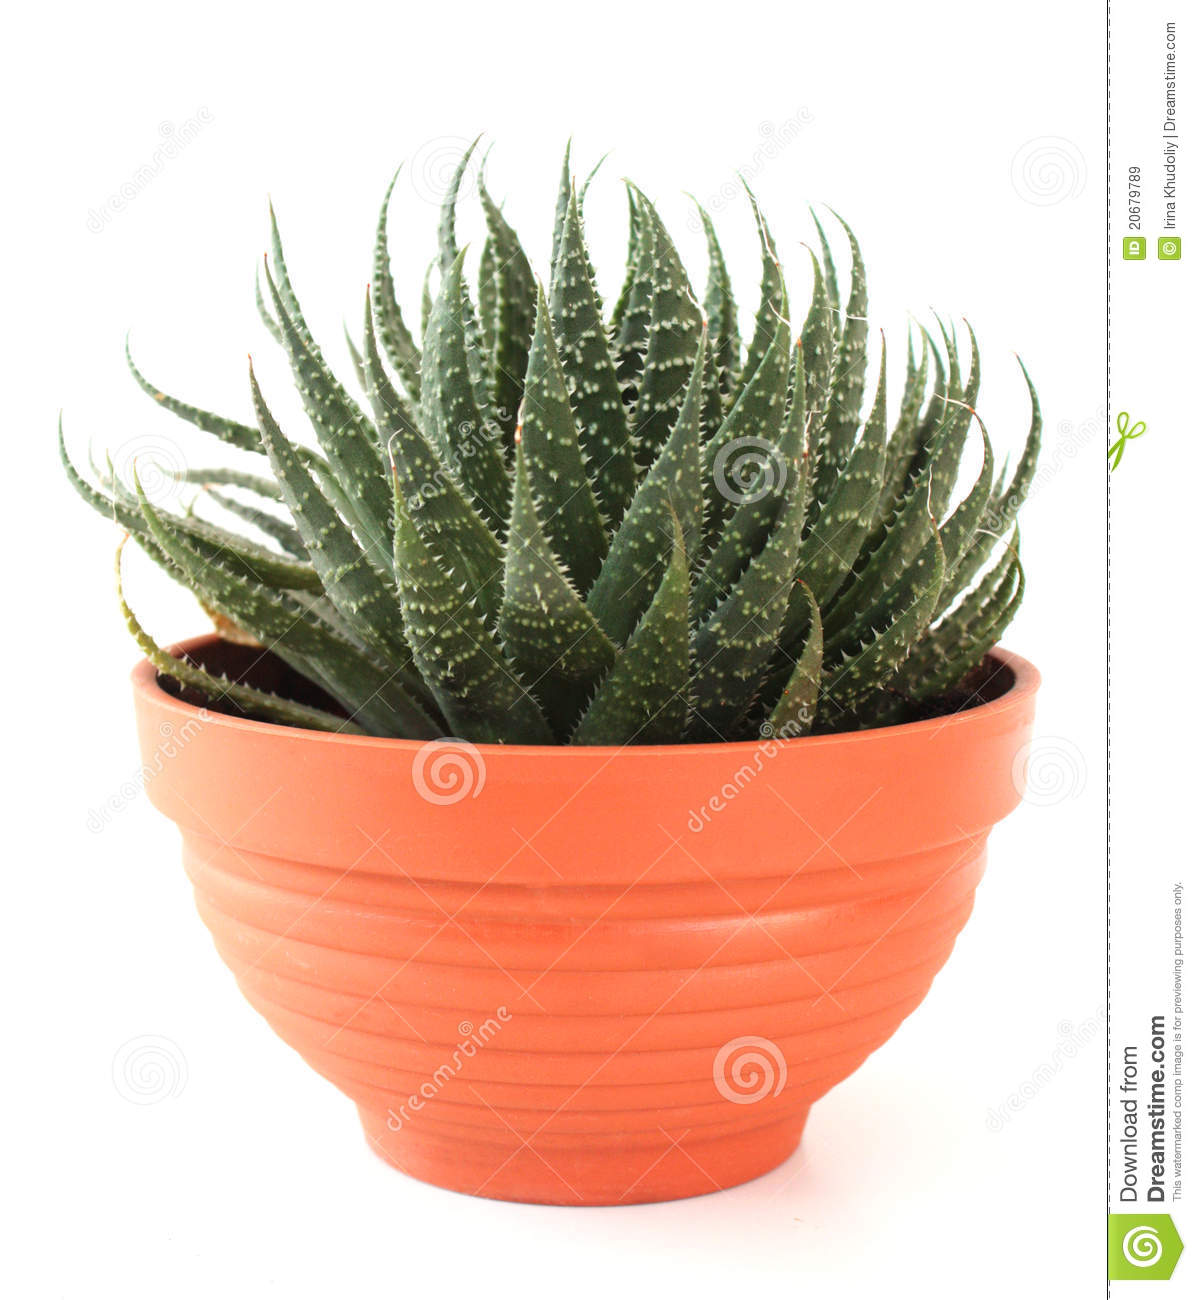 Aloe vera in a pot royalty free stock images image 20679789 - Aloe vera en pot ...